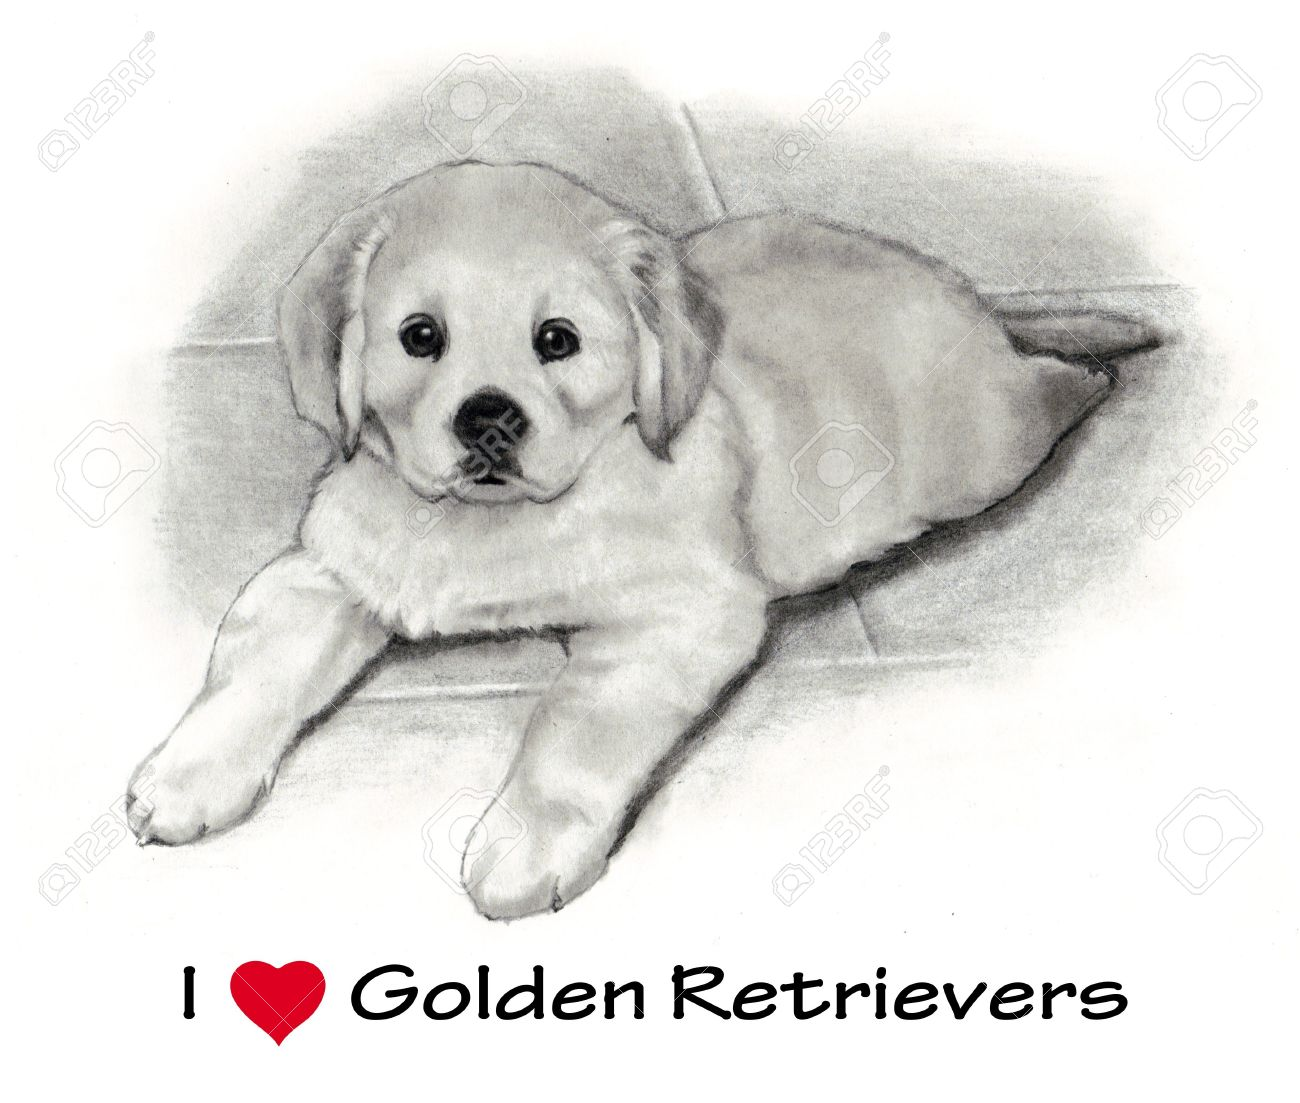 Golden Retriever Puppy: Freehand Pencil Drawing Stock Photo - 10880278